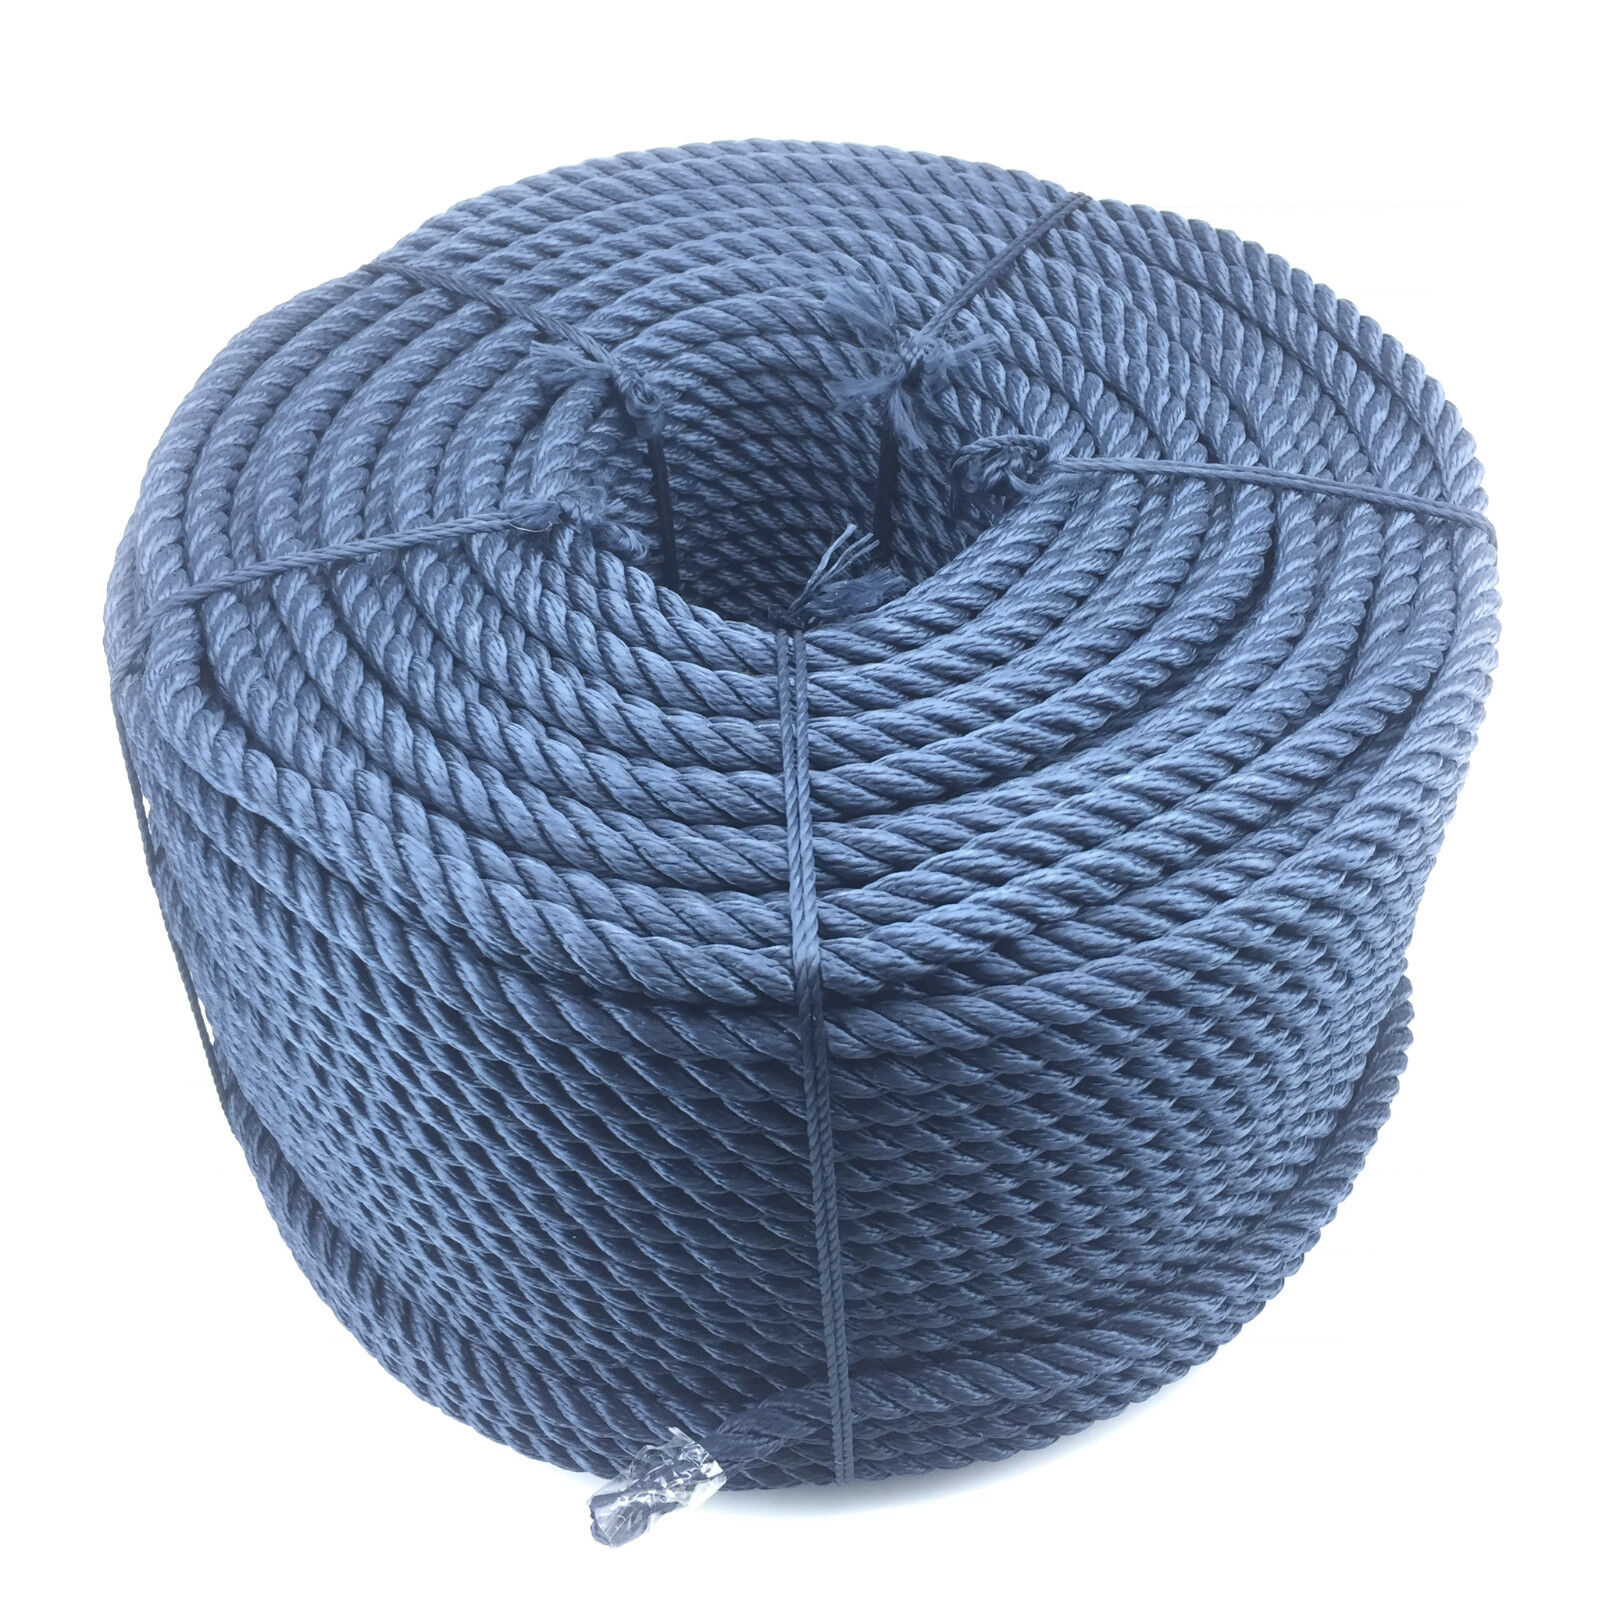 24mm Navy bluee 3 Strand Multifilament x 20 Metres (Floating Rope) Softline Rope